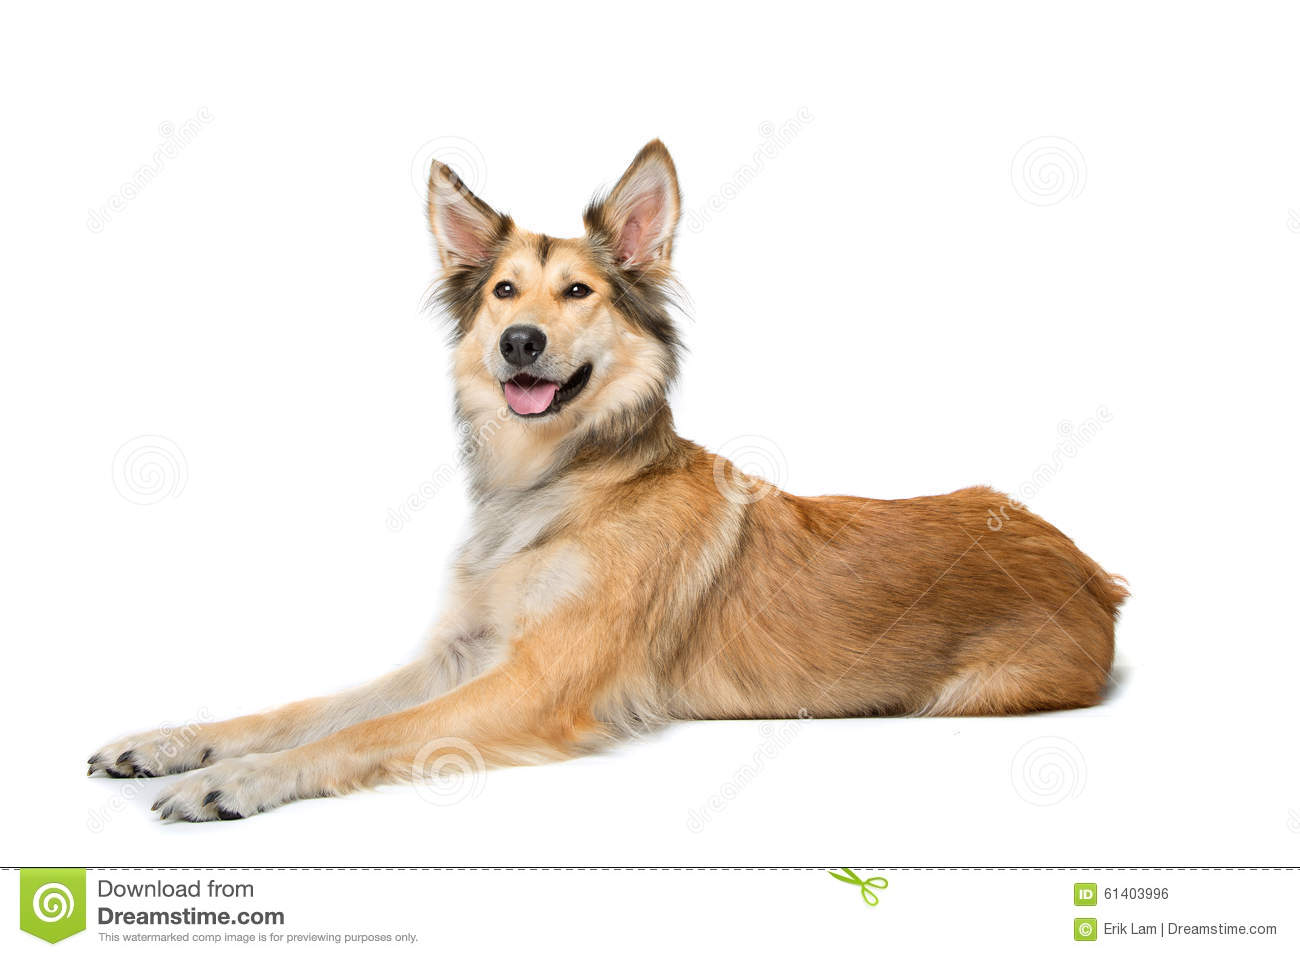 Mixed breed shepherd dog lying in front of a white background.